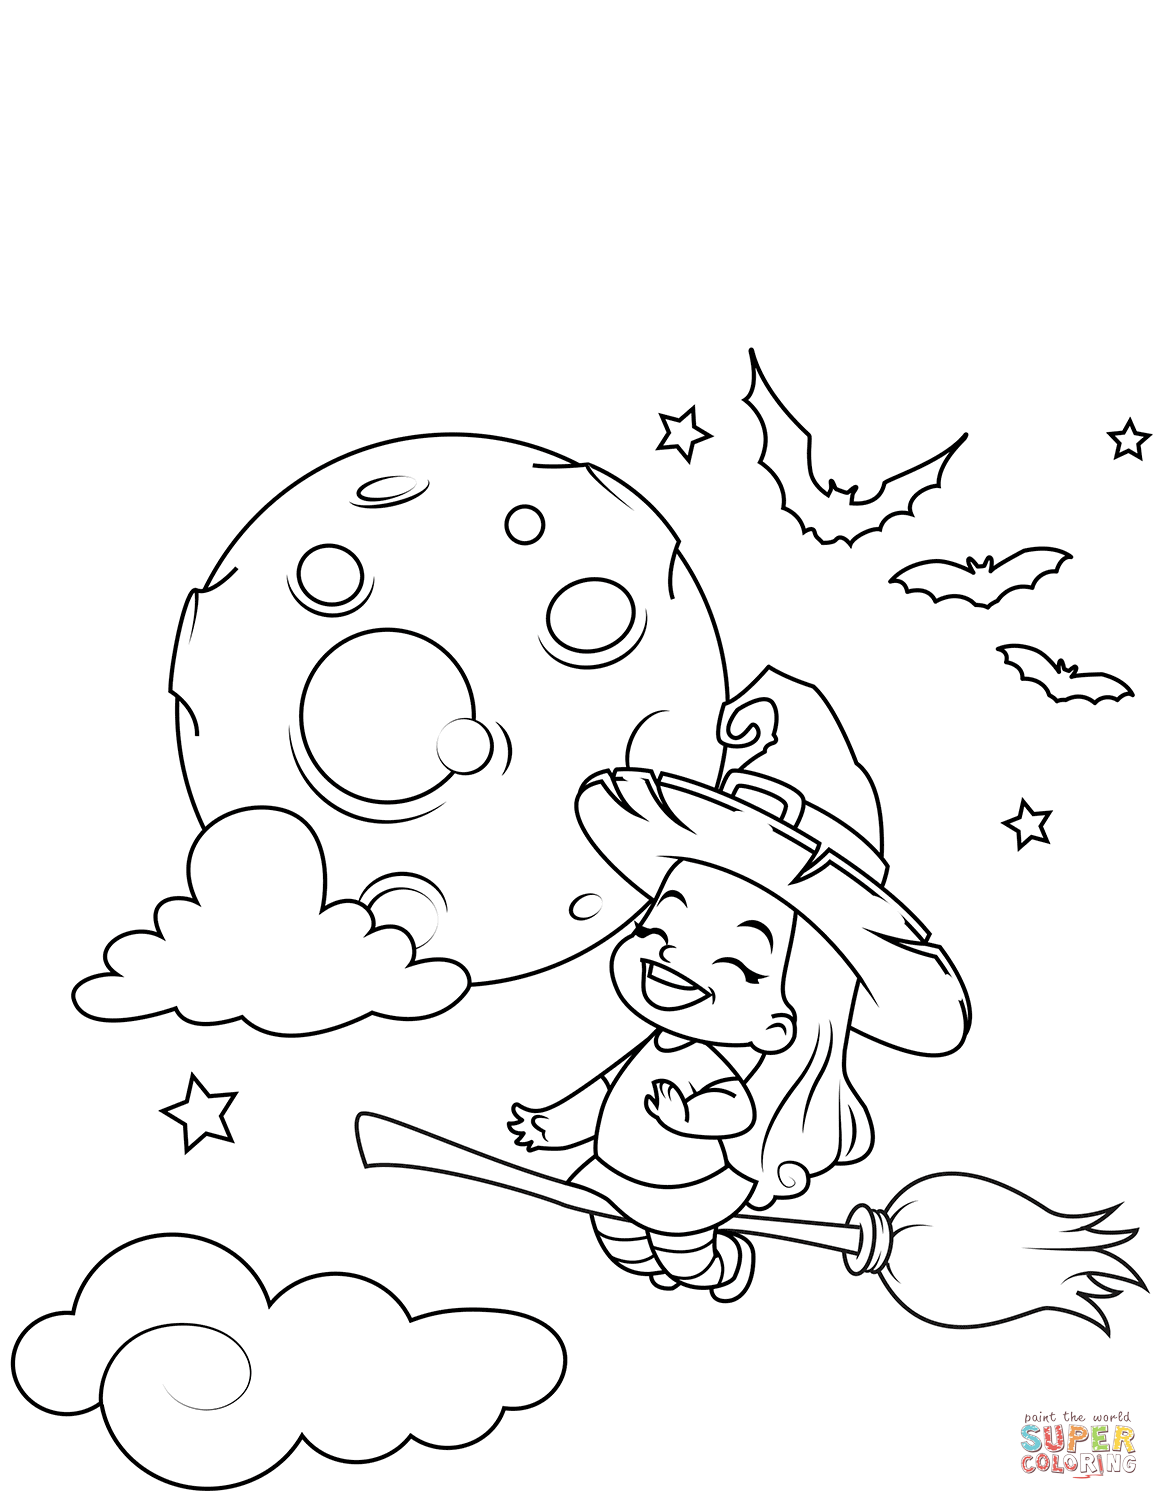 Cute Little Witch Flying on a Broomstick | Super Coloring ...